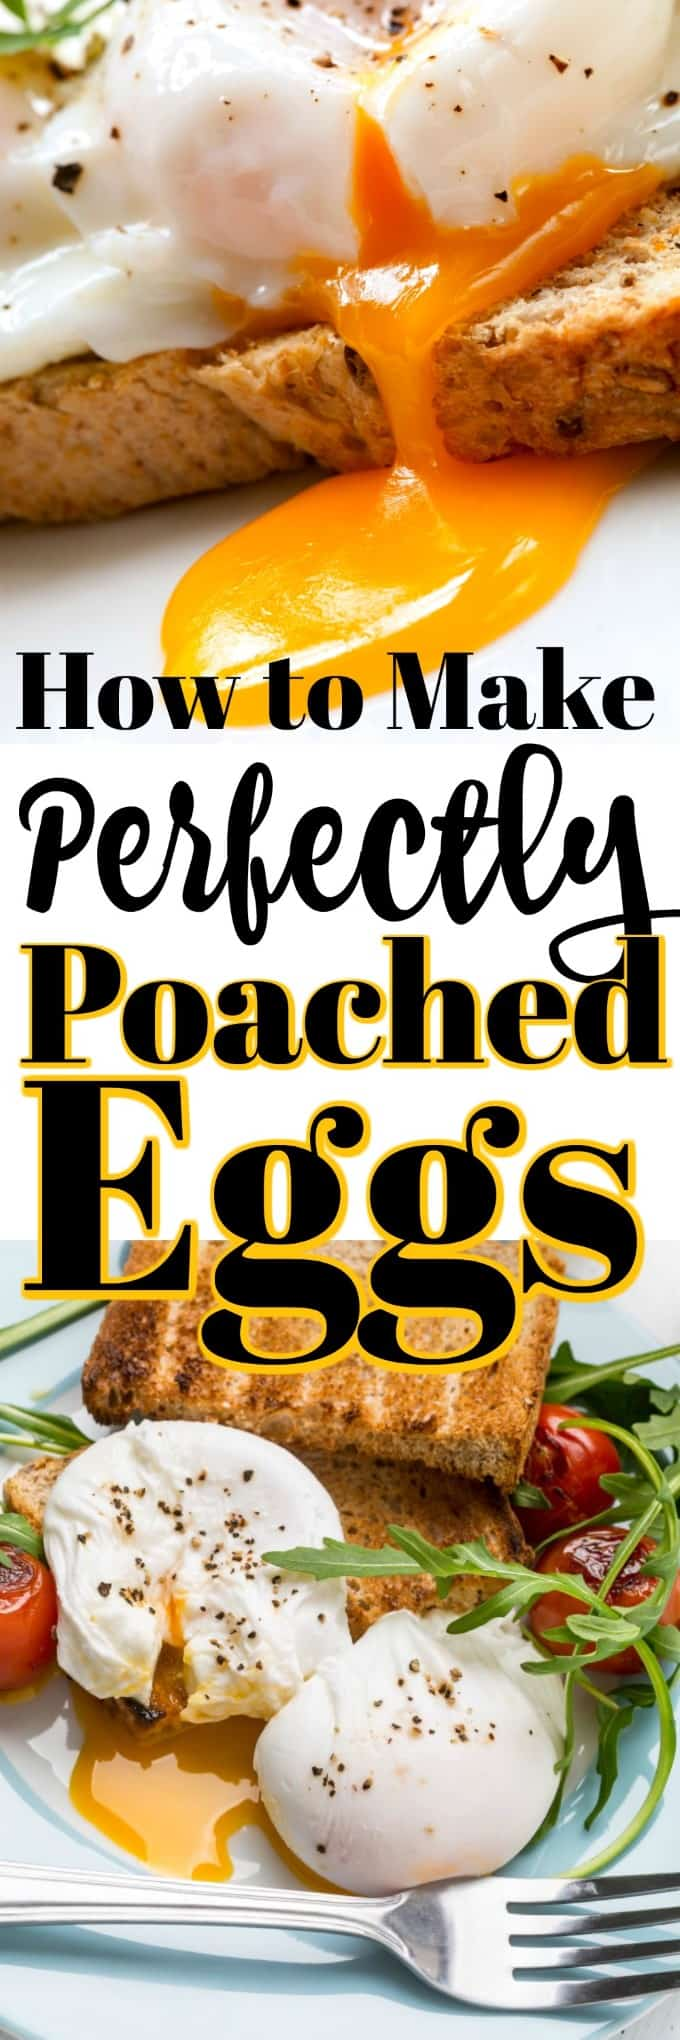 How to Make Perfectly Poached Eggs is easier than you think. Their richness adds so much to a simple breakfast to an elaborate Eggs Benedict! #poachedeggs #howto #eggs #breakfast #brunch